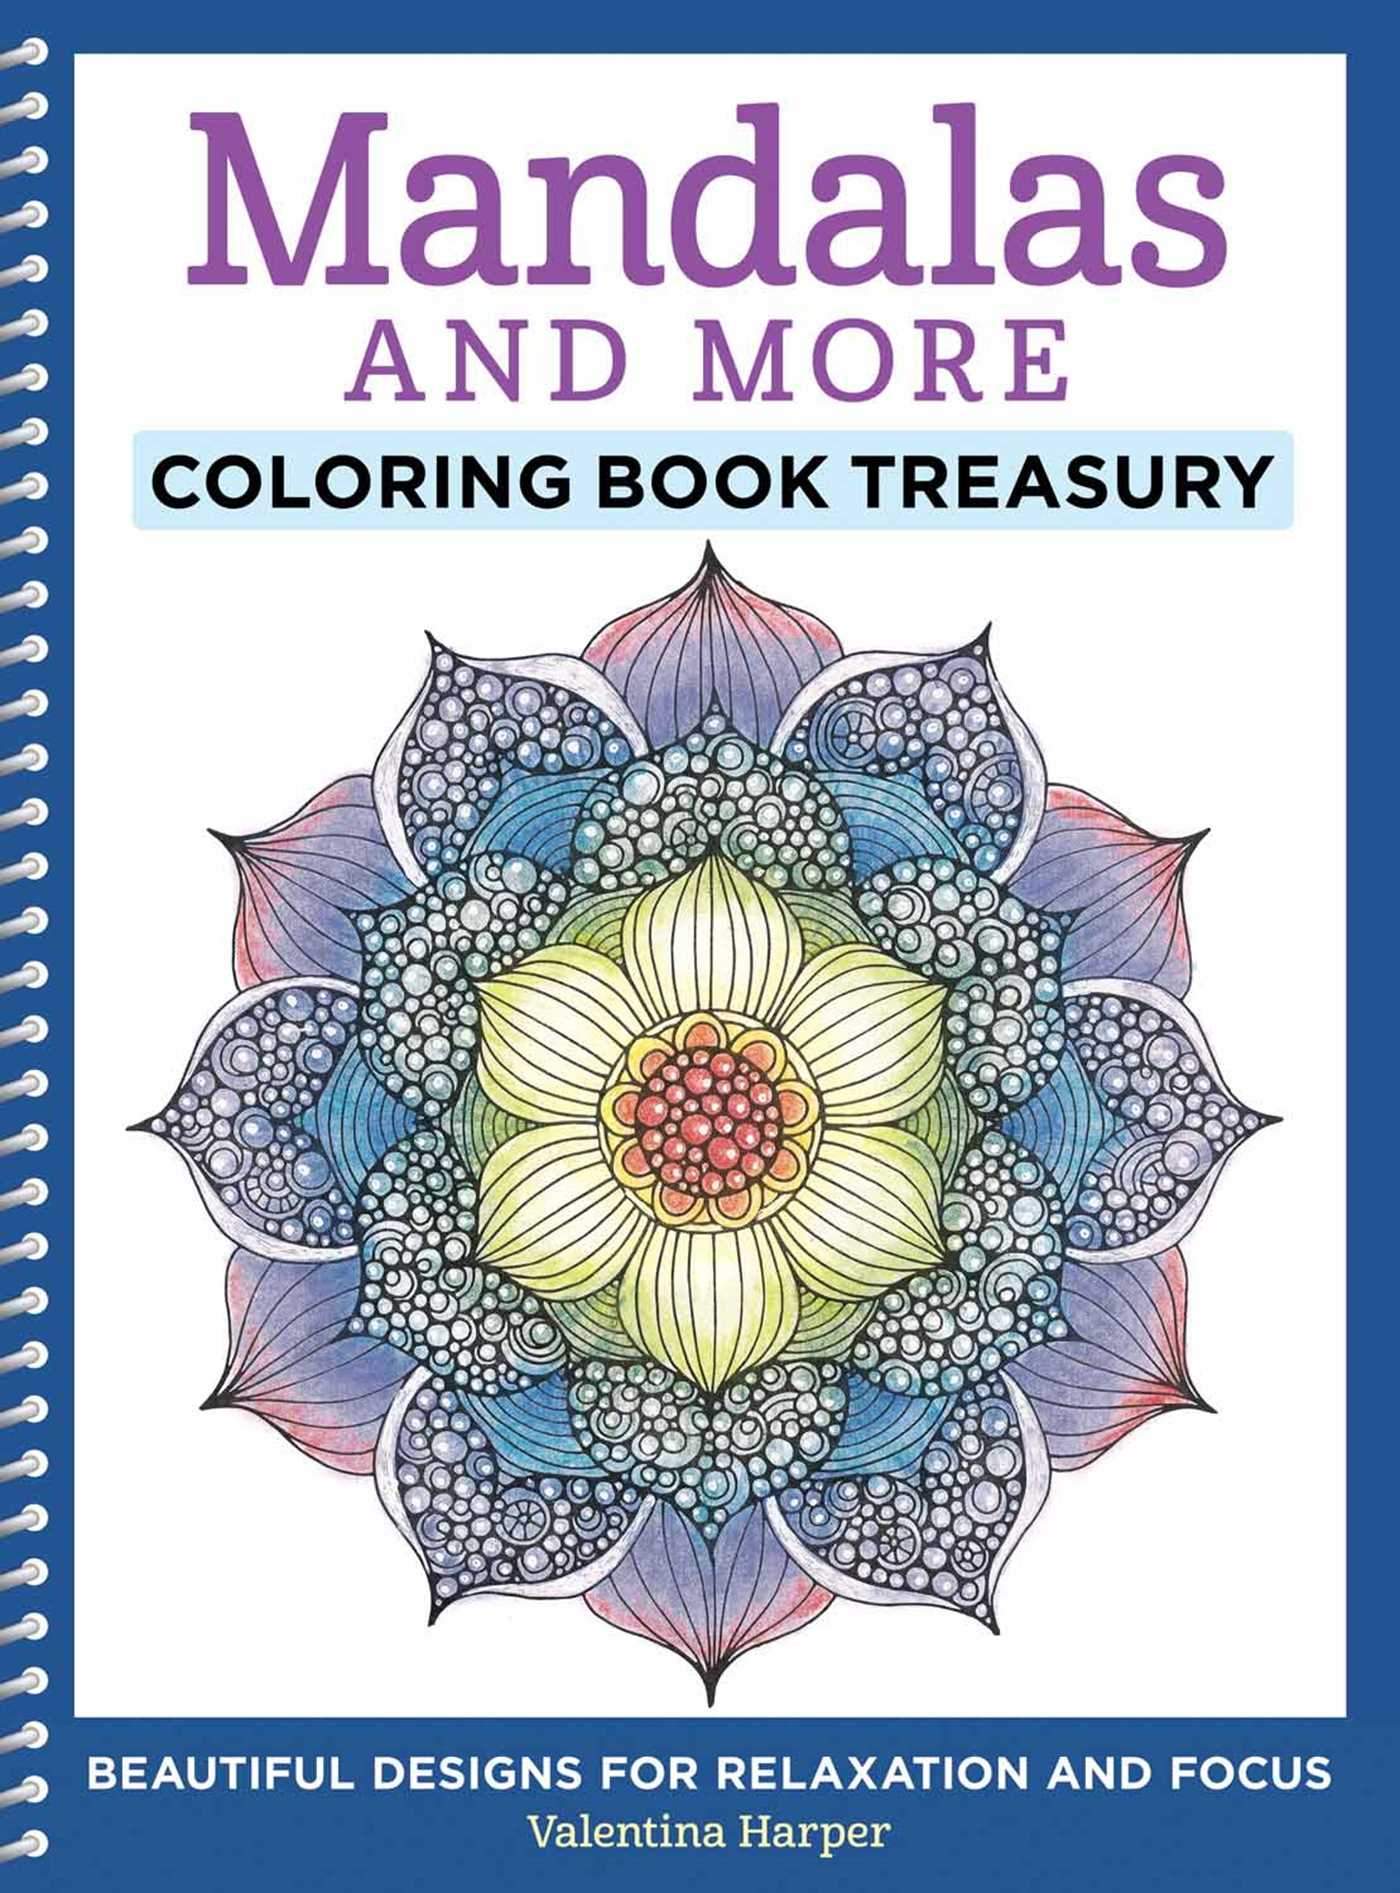 Mandalas and More Coloring Book Treasury | Book by Valentina Harper ...